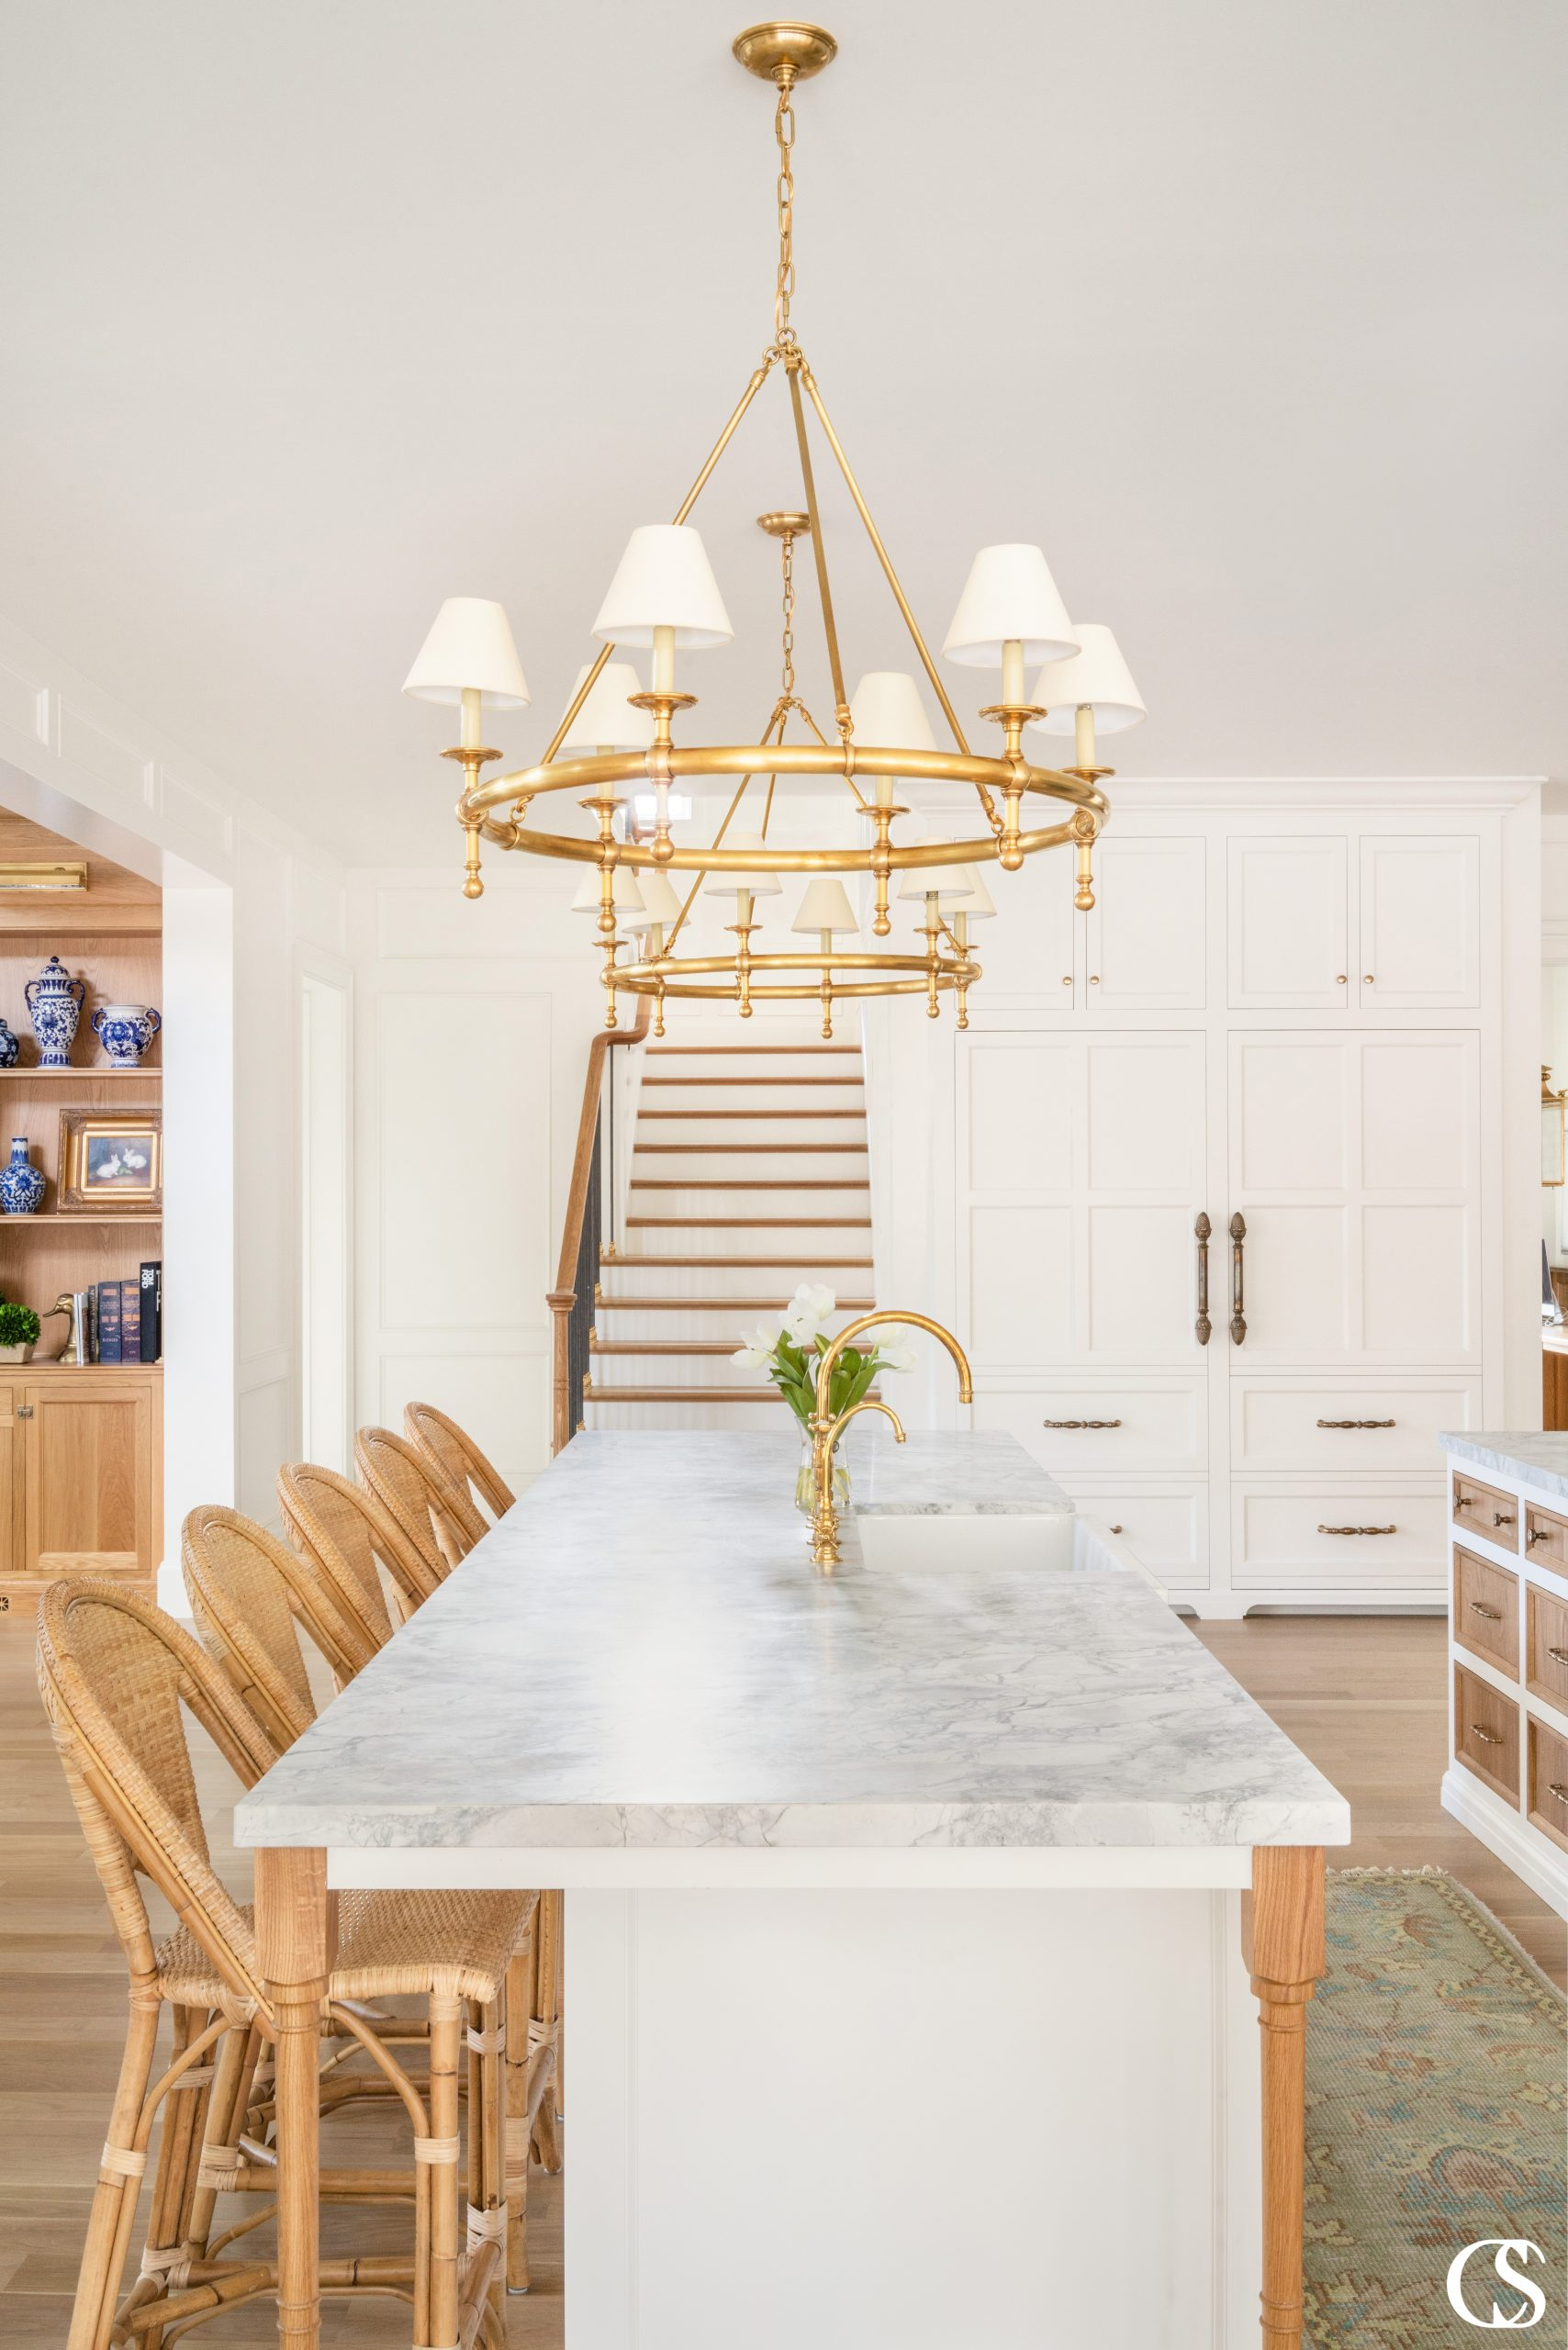 Custom kitchen cabinet design extends beyond your basic cupboards and drawers—think in terms of a kitchen island, wall built-ins, and even complementary display built ins in the next room.